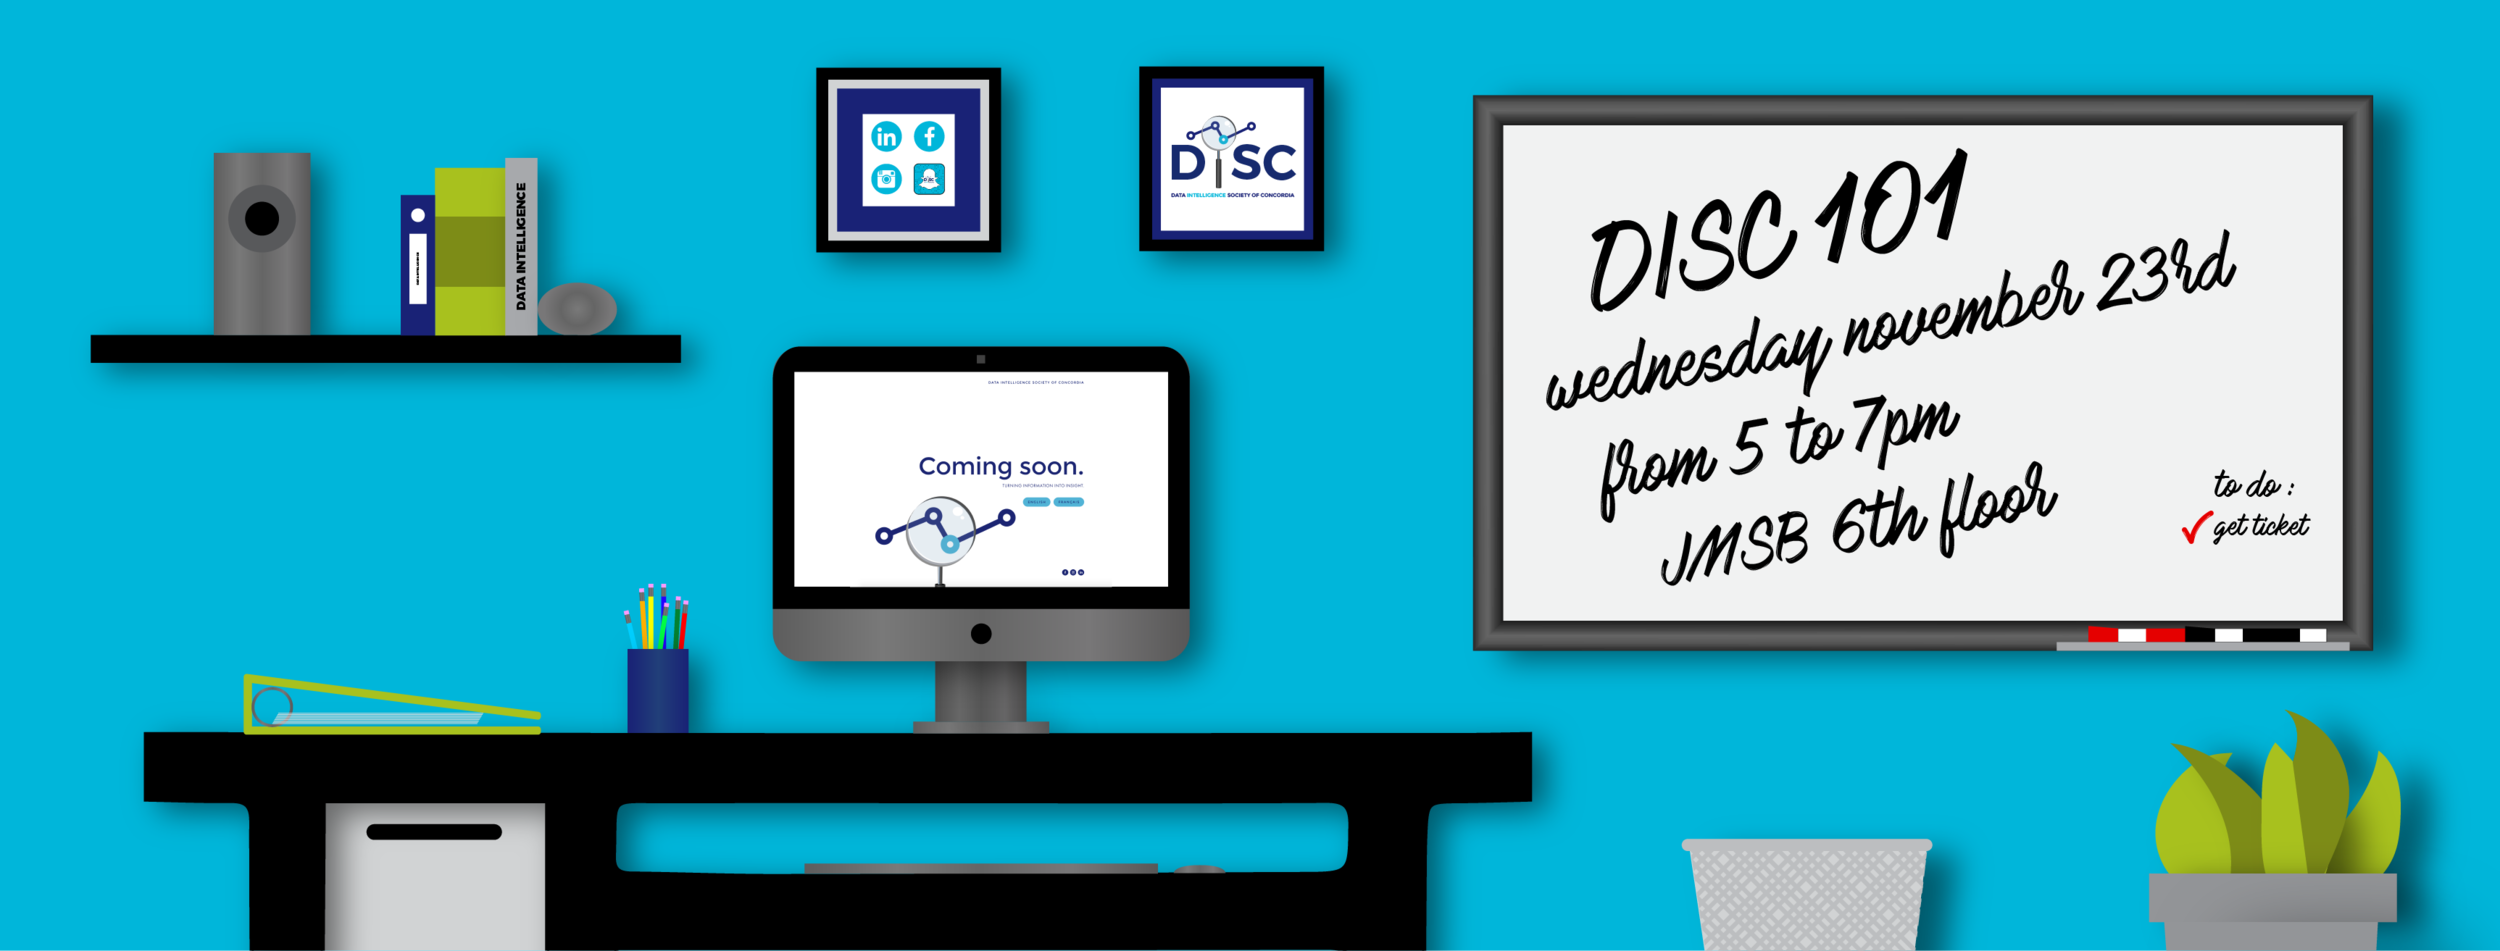 DISC 101 : Meet the Committee on Wednesday November 23rd from 5pm to 7pm